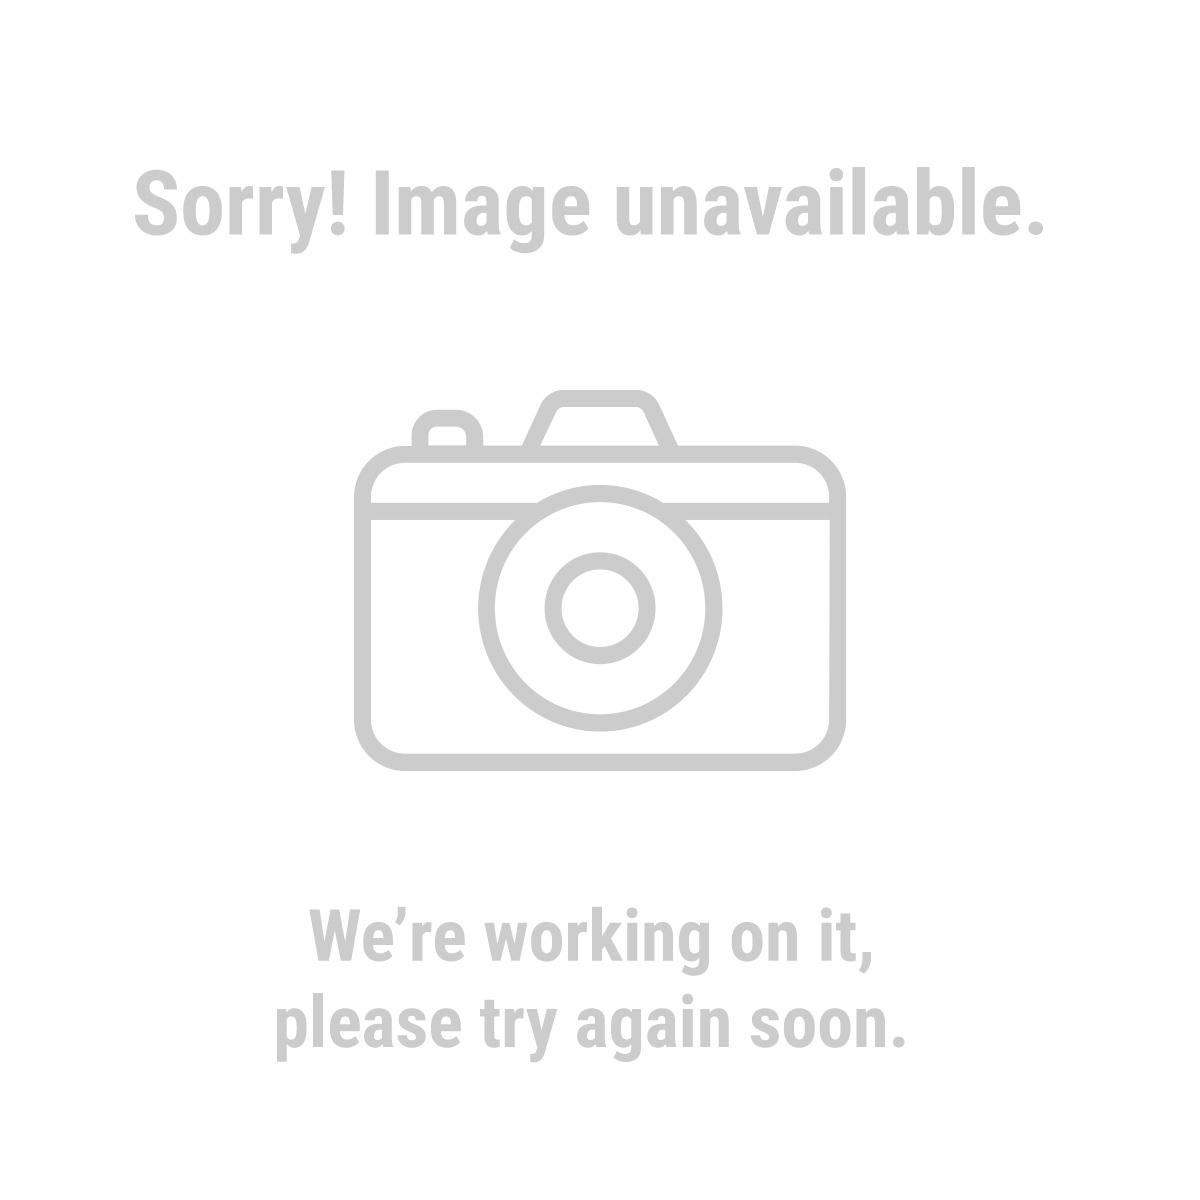 Haul-Master 61867 150 Lbs. Capacity Foldable Hand Truck